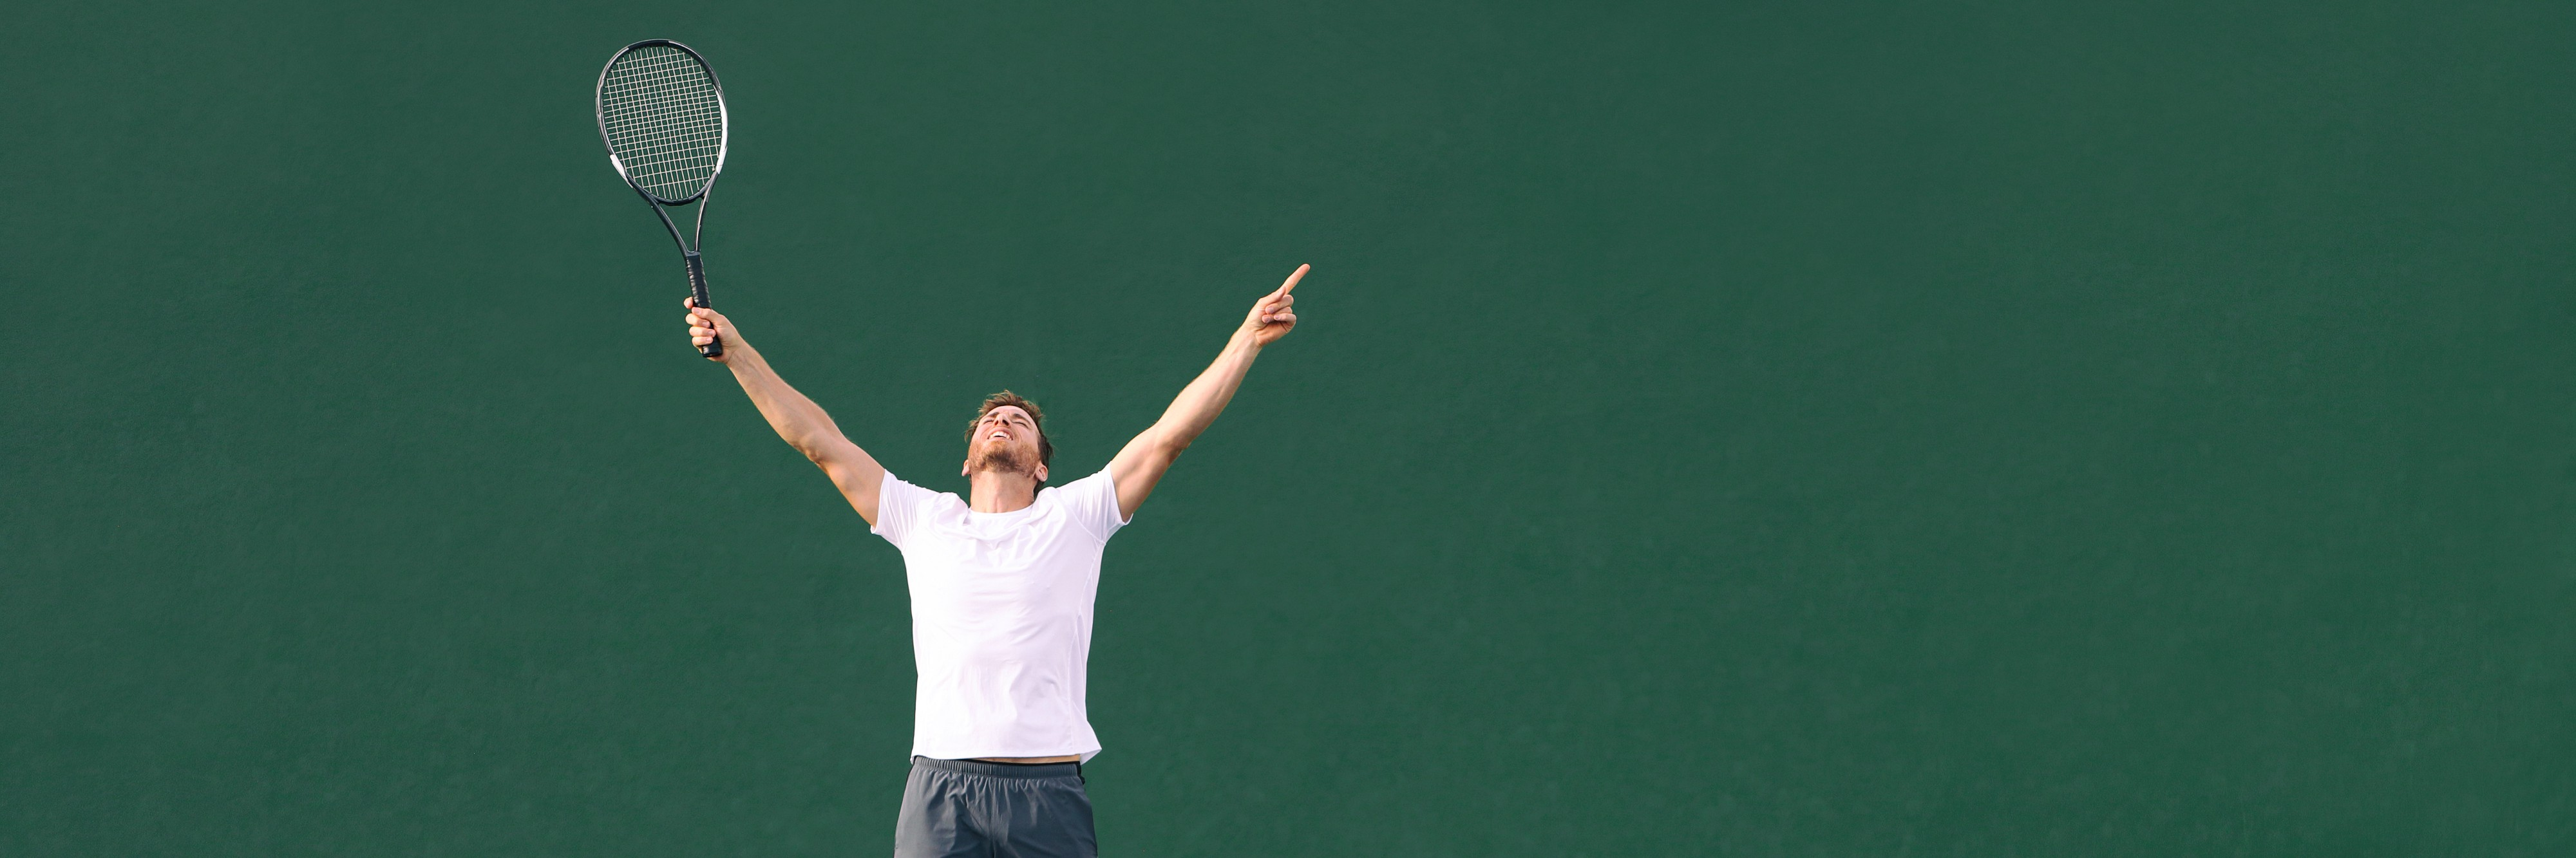 Tennis player raising his arms in victory.